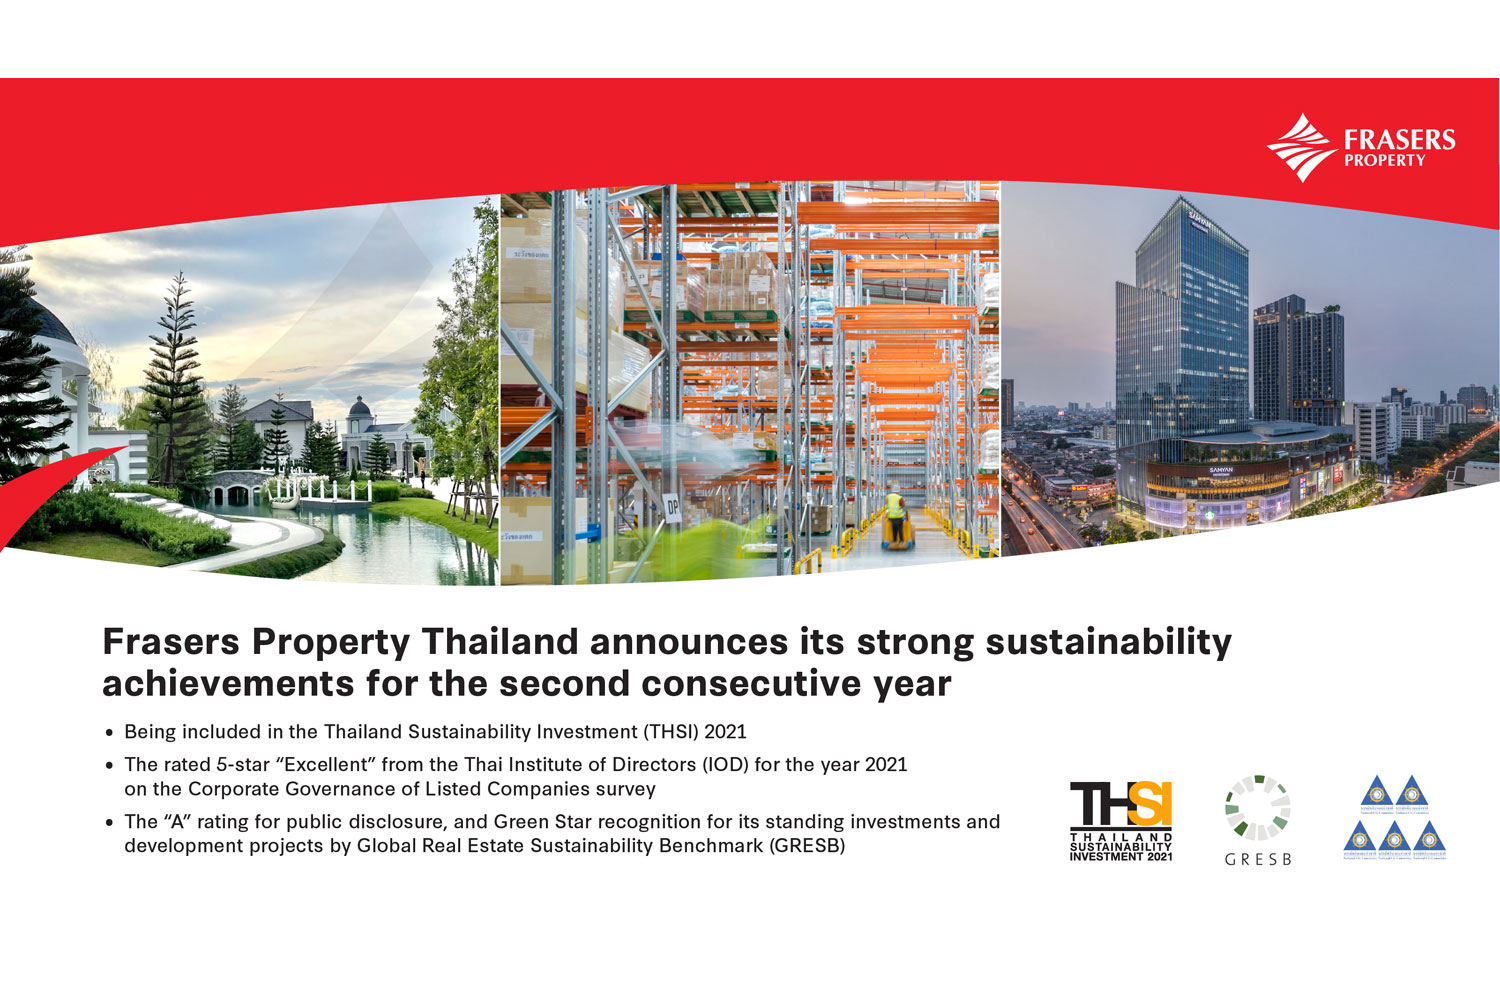 Frasers Property Thailand recognised for its strong sustainability